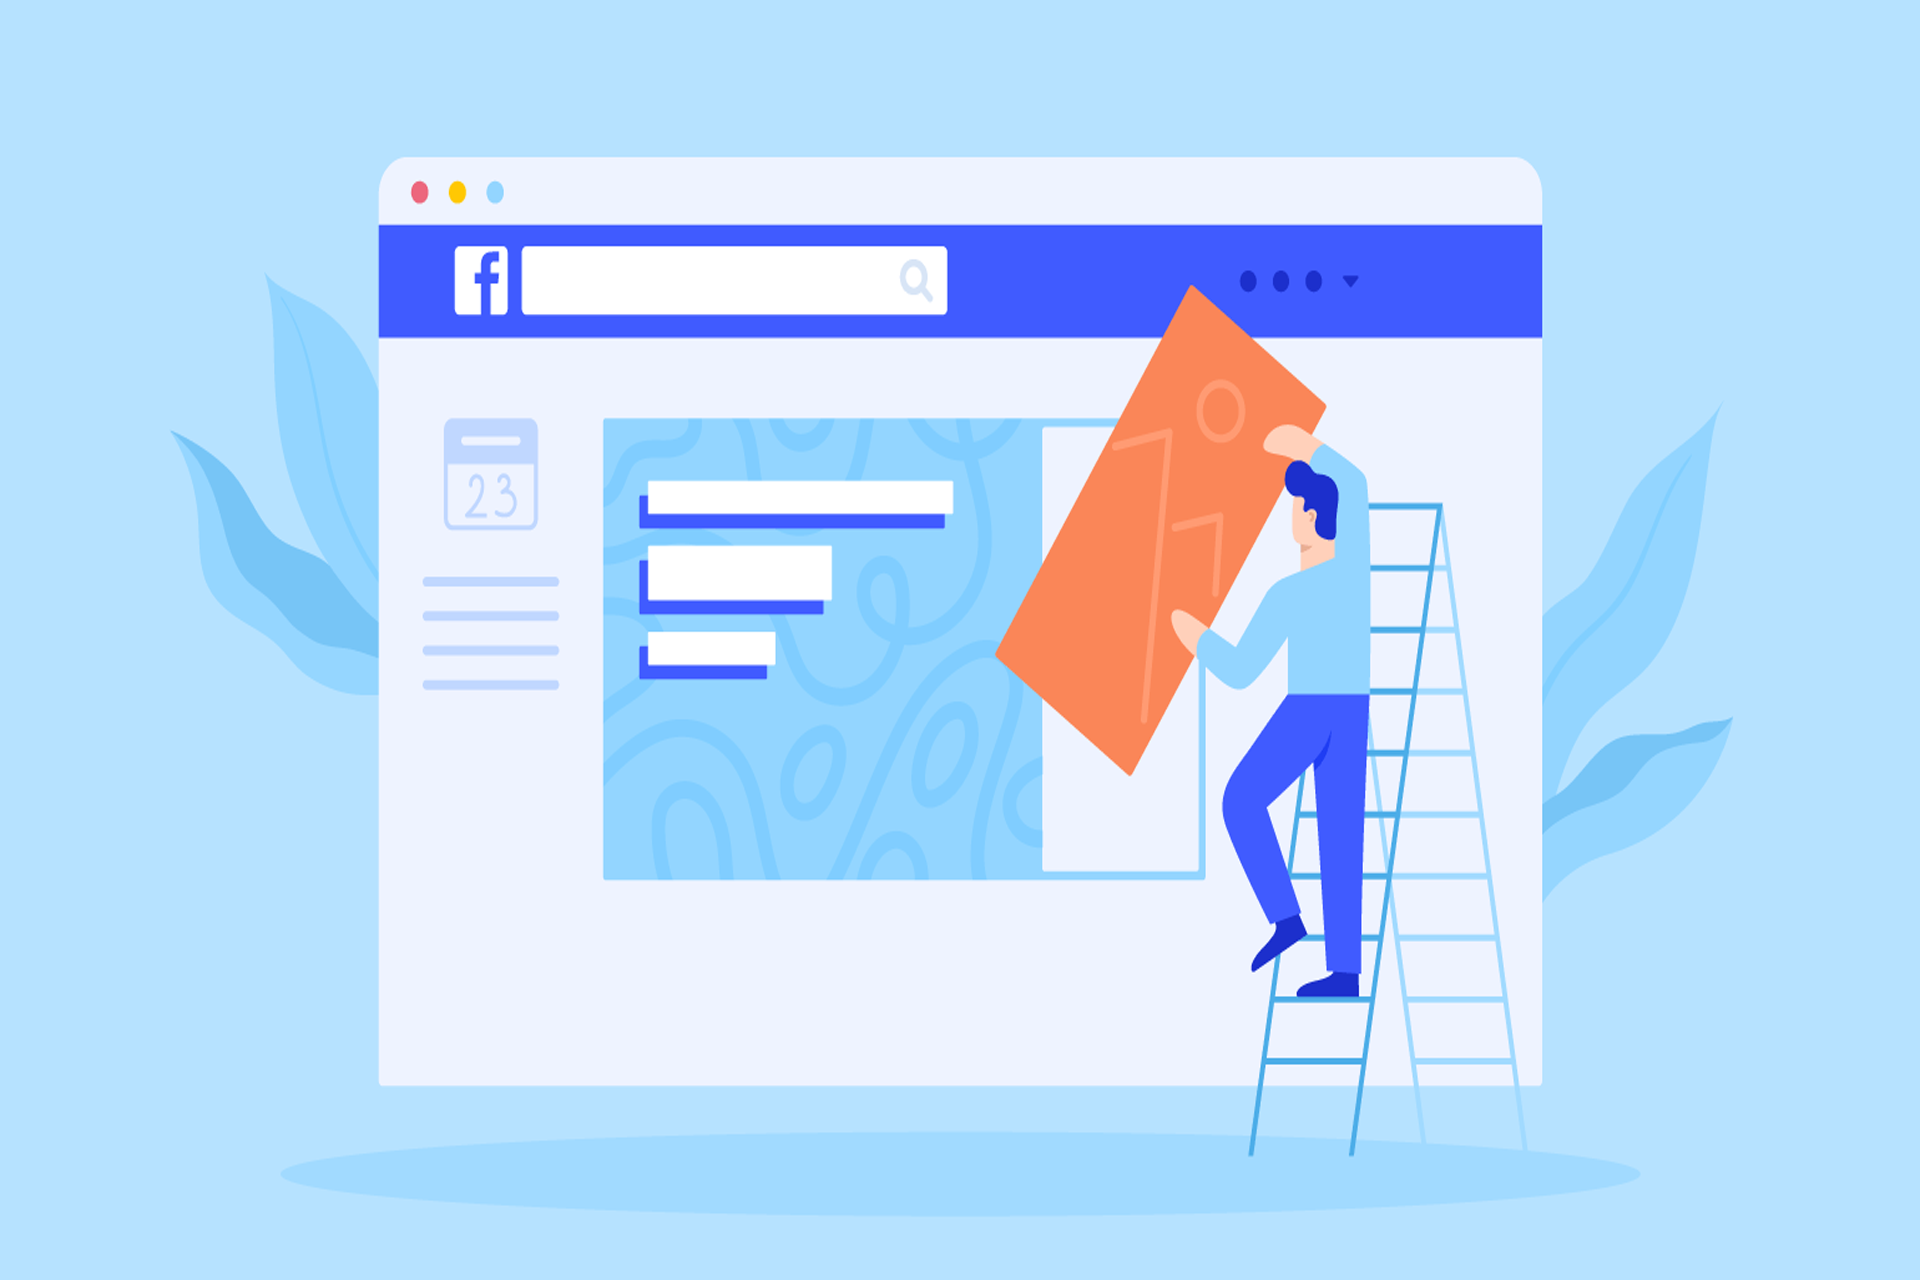 Facebook Update the new public groups experience May 2021